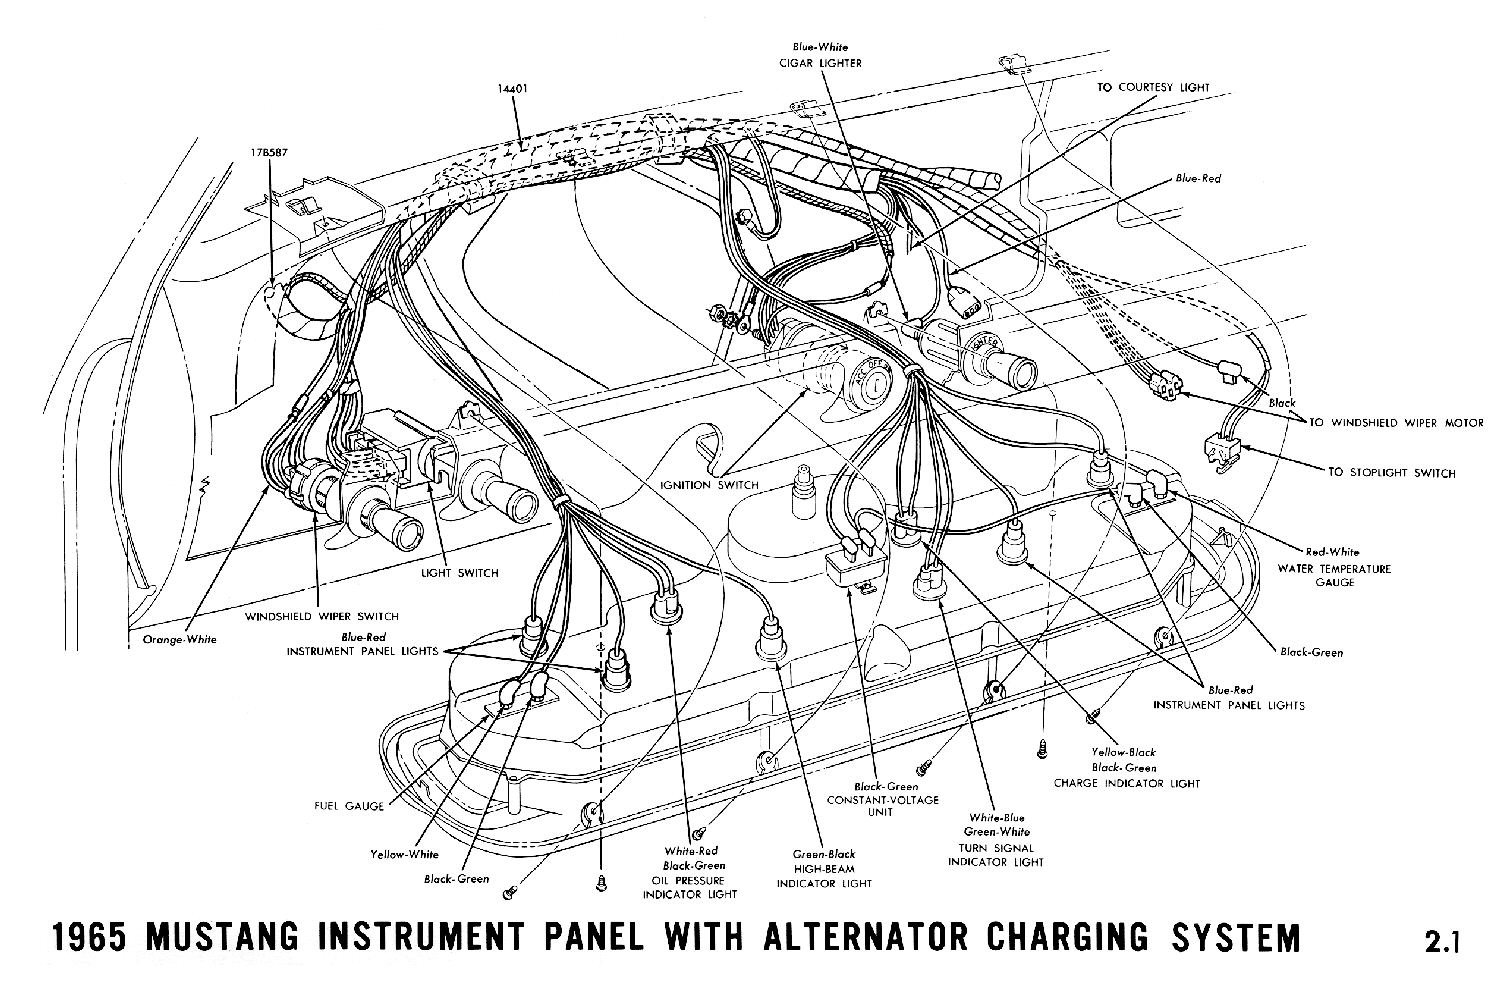 1970 Camaro Fuse Box Diagram Wiring Library Mustang Ignition 65 Voltage At Trusted Diagrams U2022 1973 Only